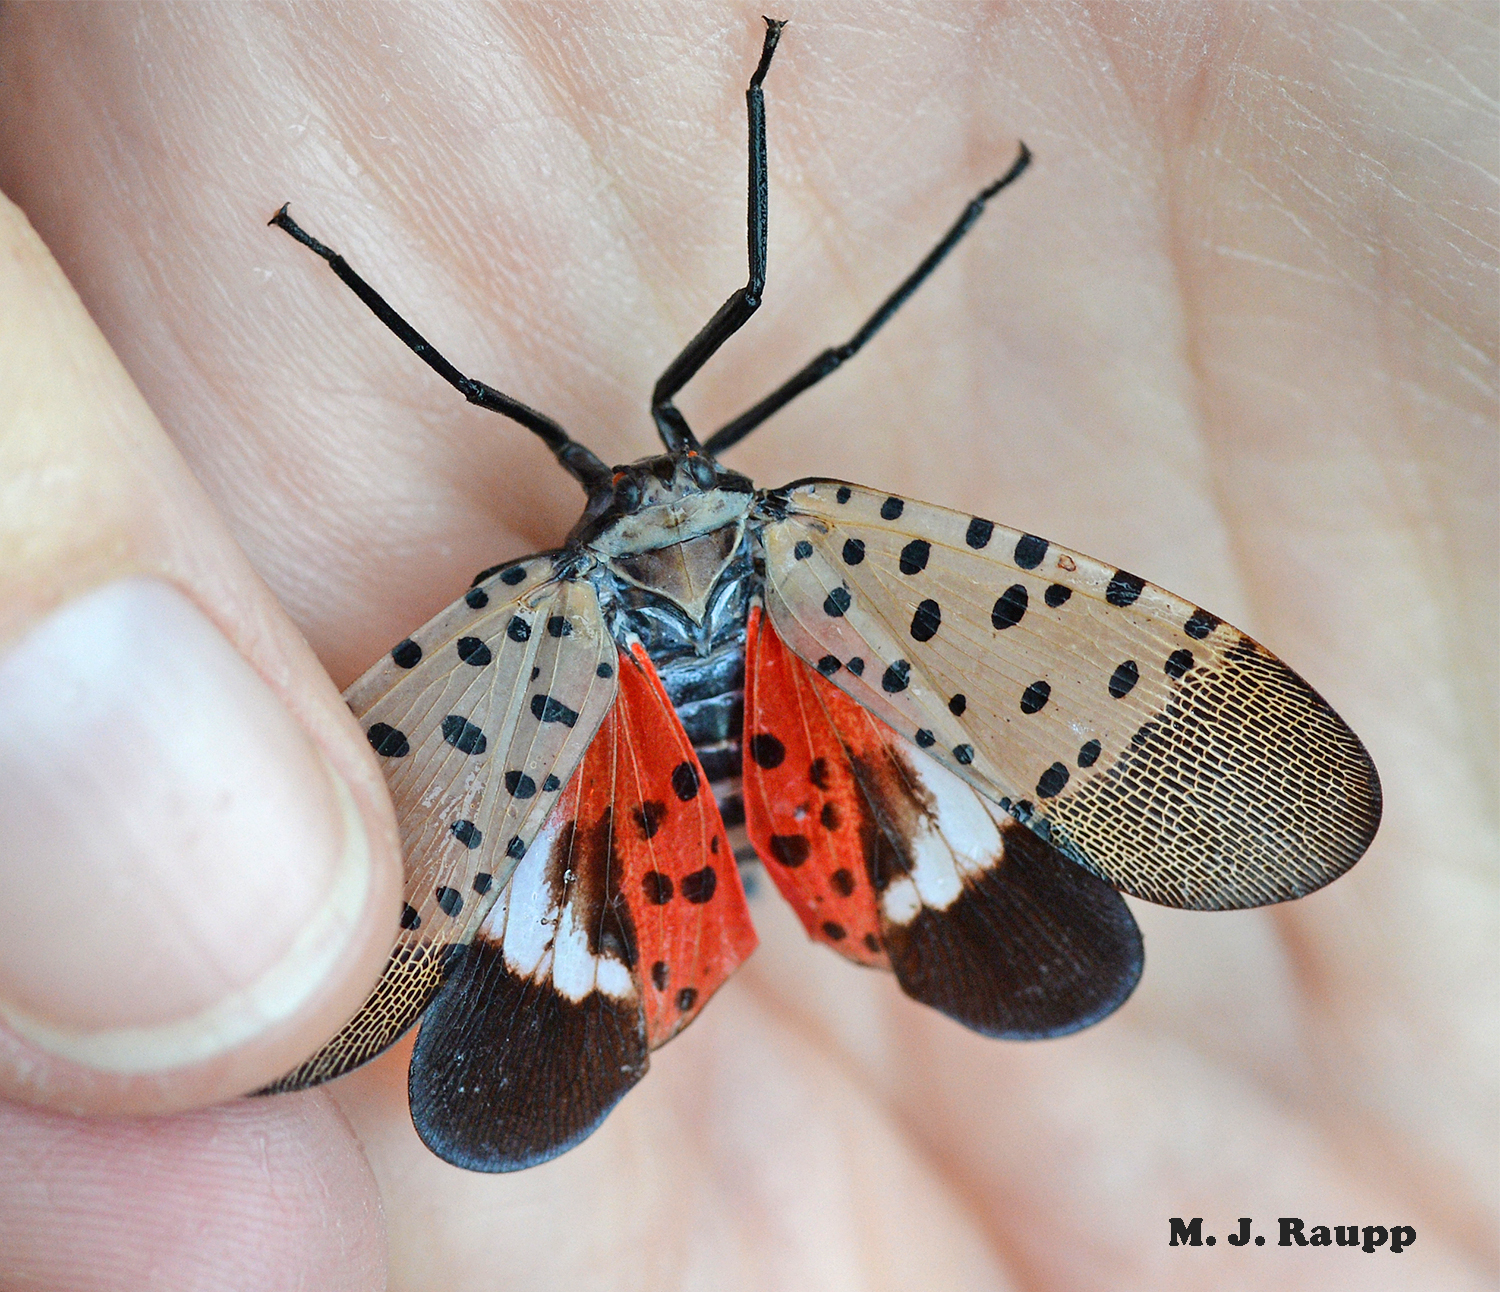 The spotted lanternfly is an invasive pests that feeds on more than 70 species of trees and vines.